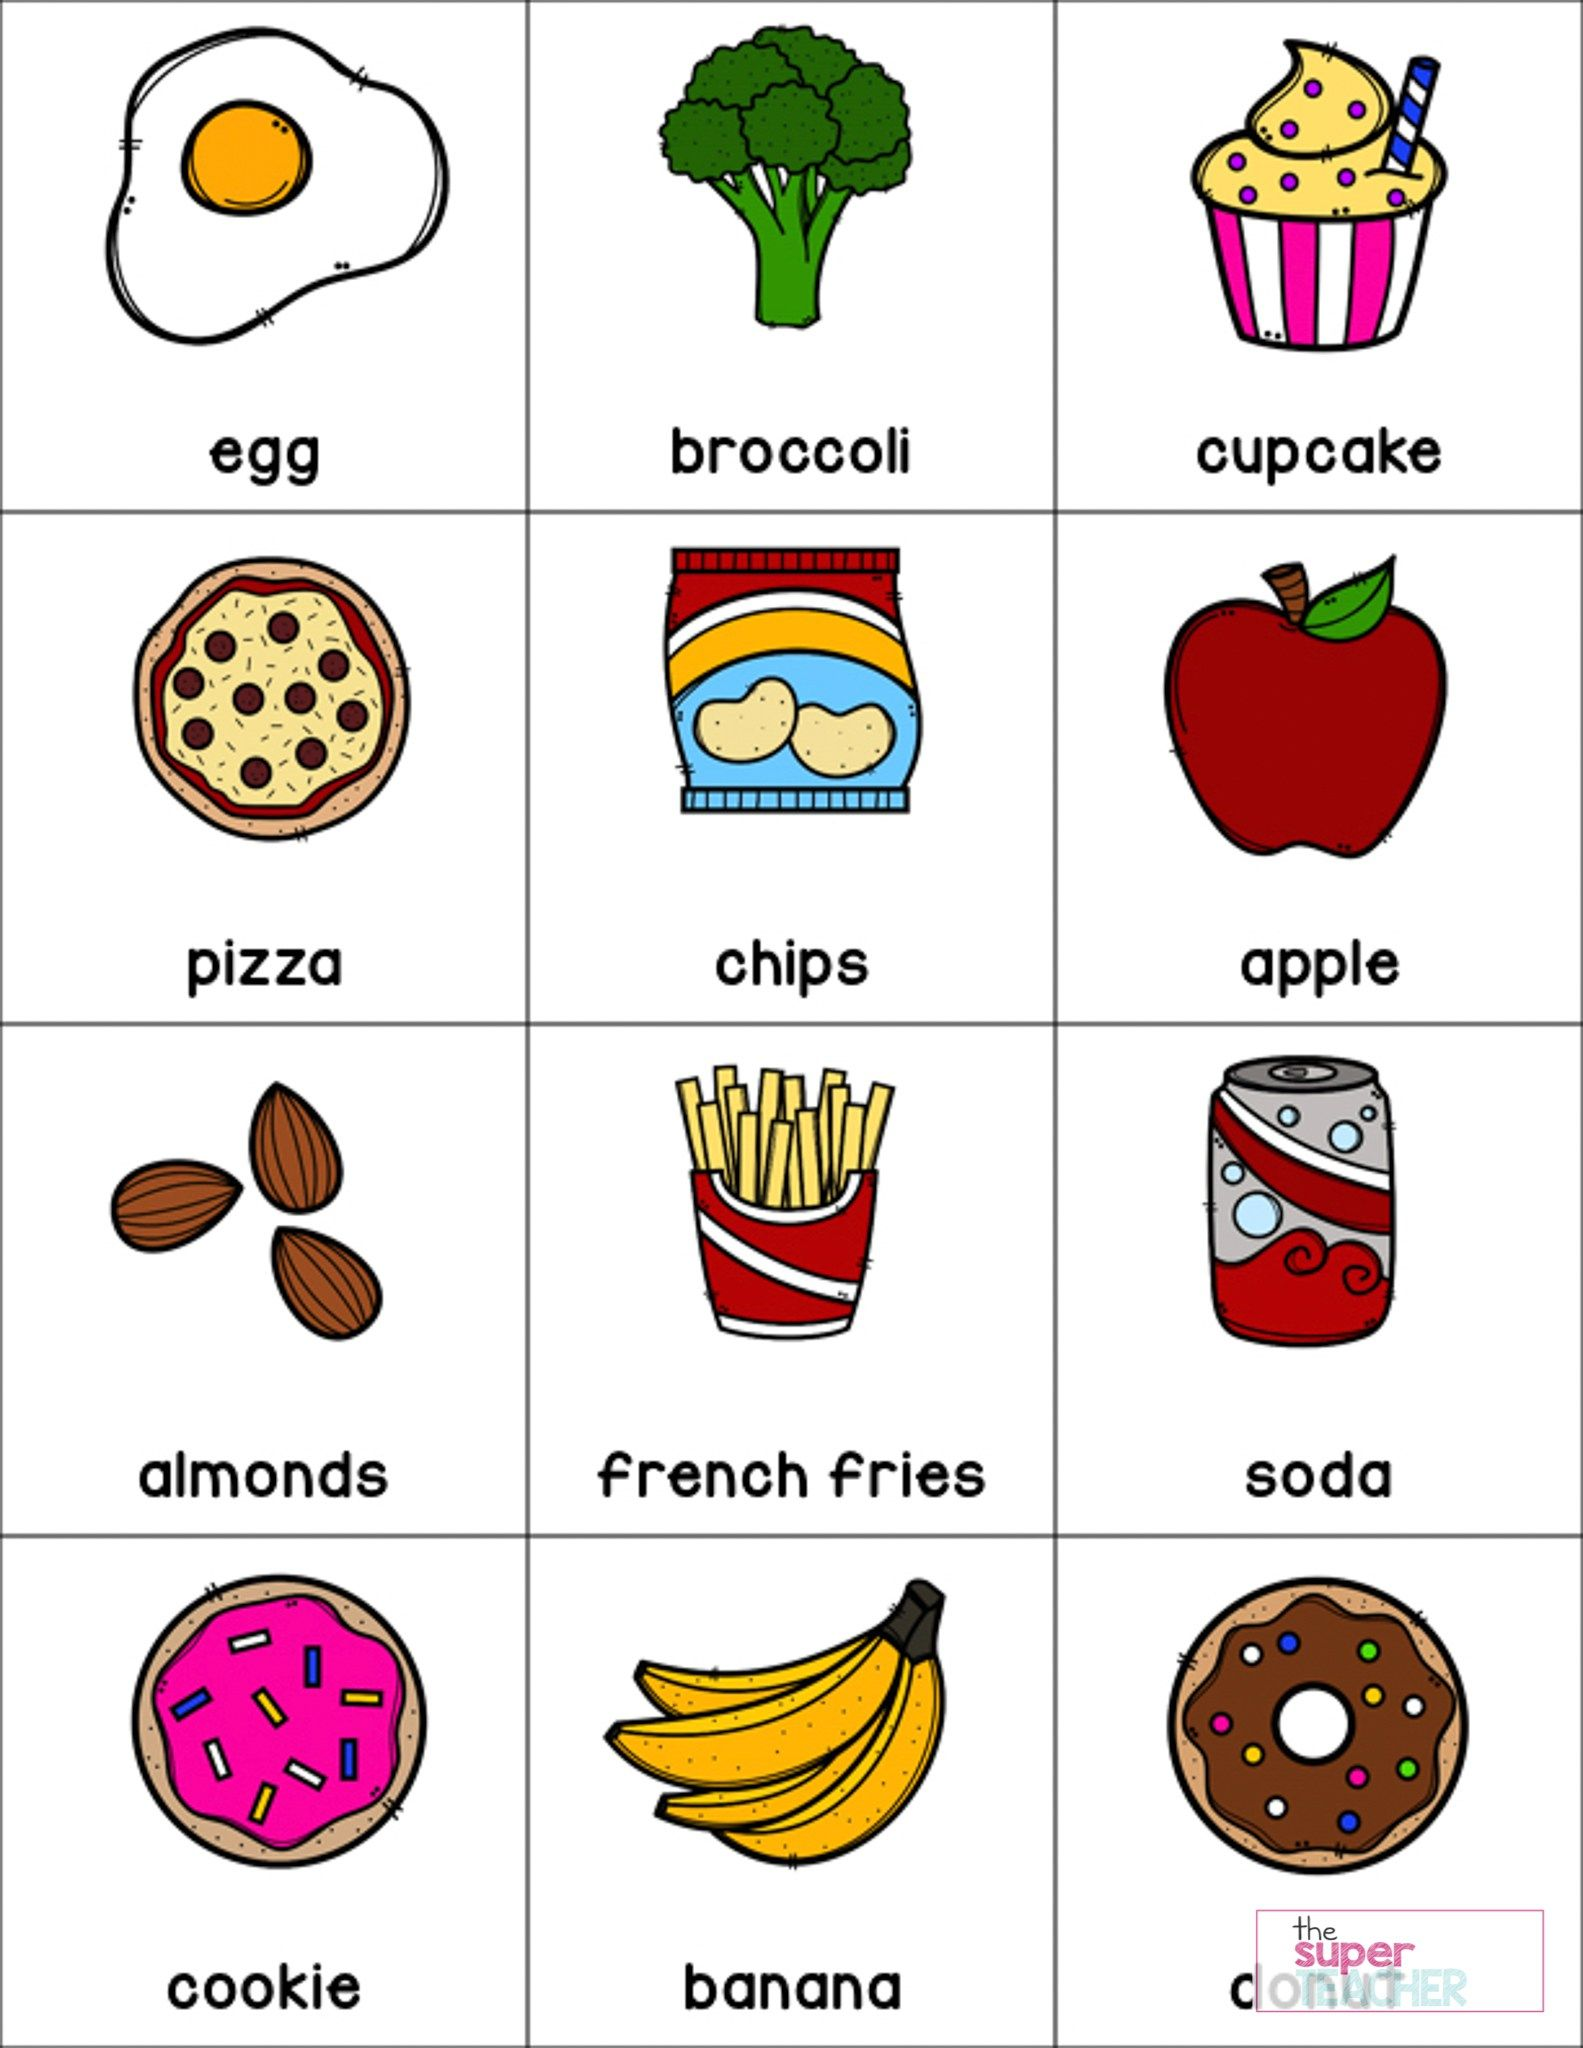 worksheet Healthy Food Worksheets healthy foods worksheet free download worksheets preschool the super teacher